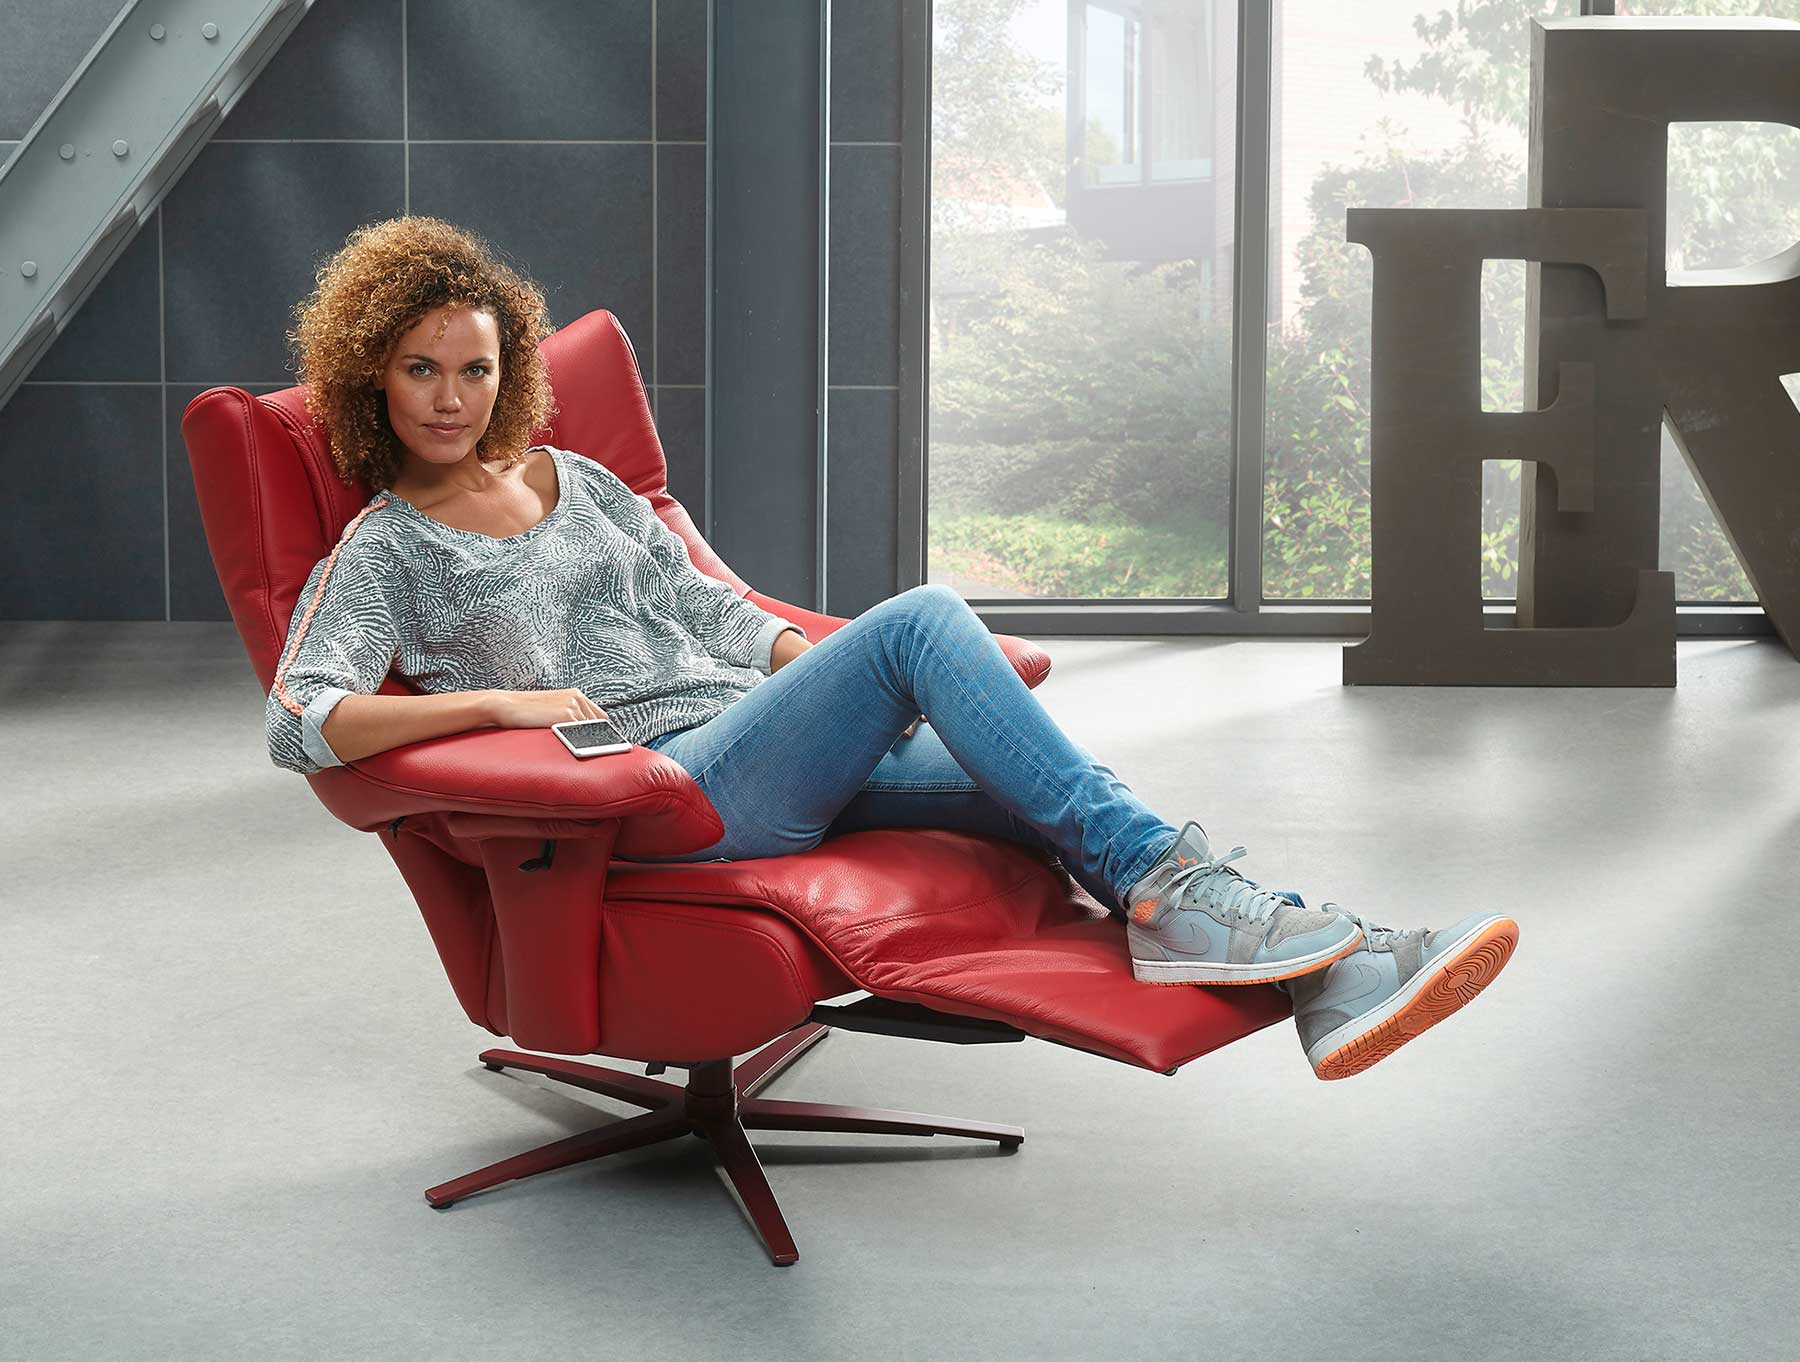 Novastyl relaxfauteuil